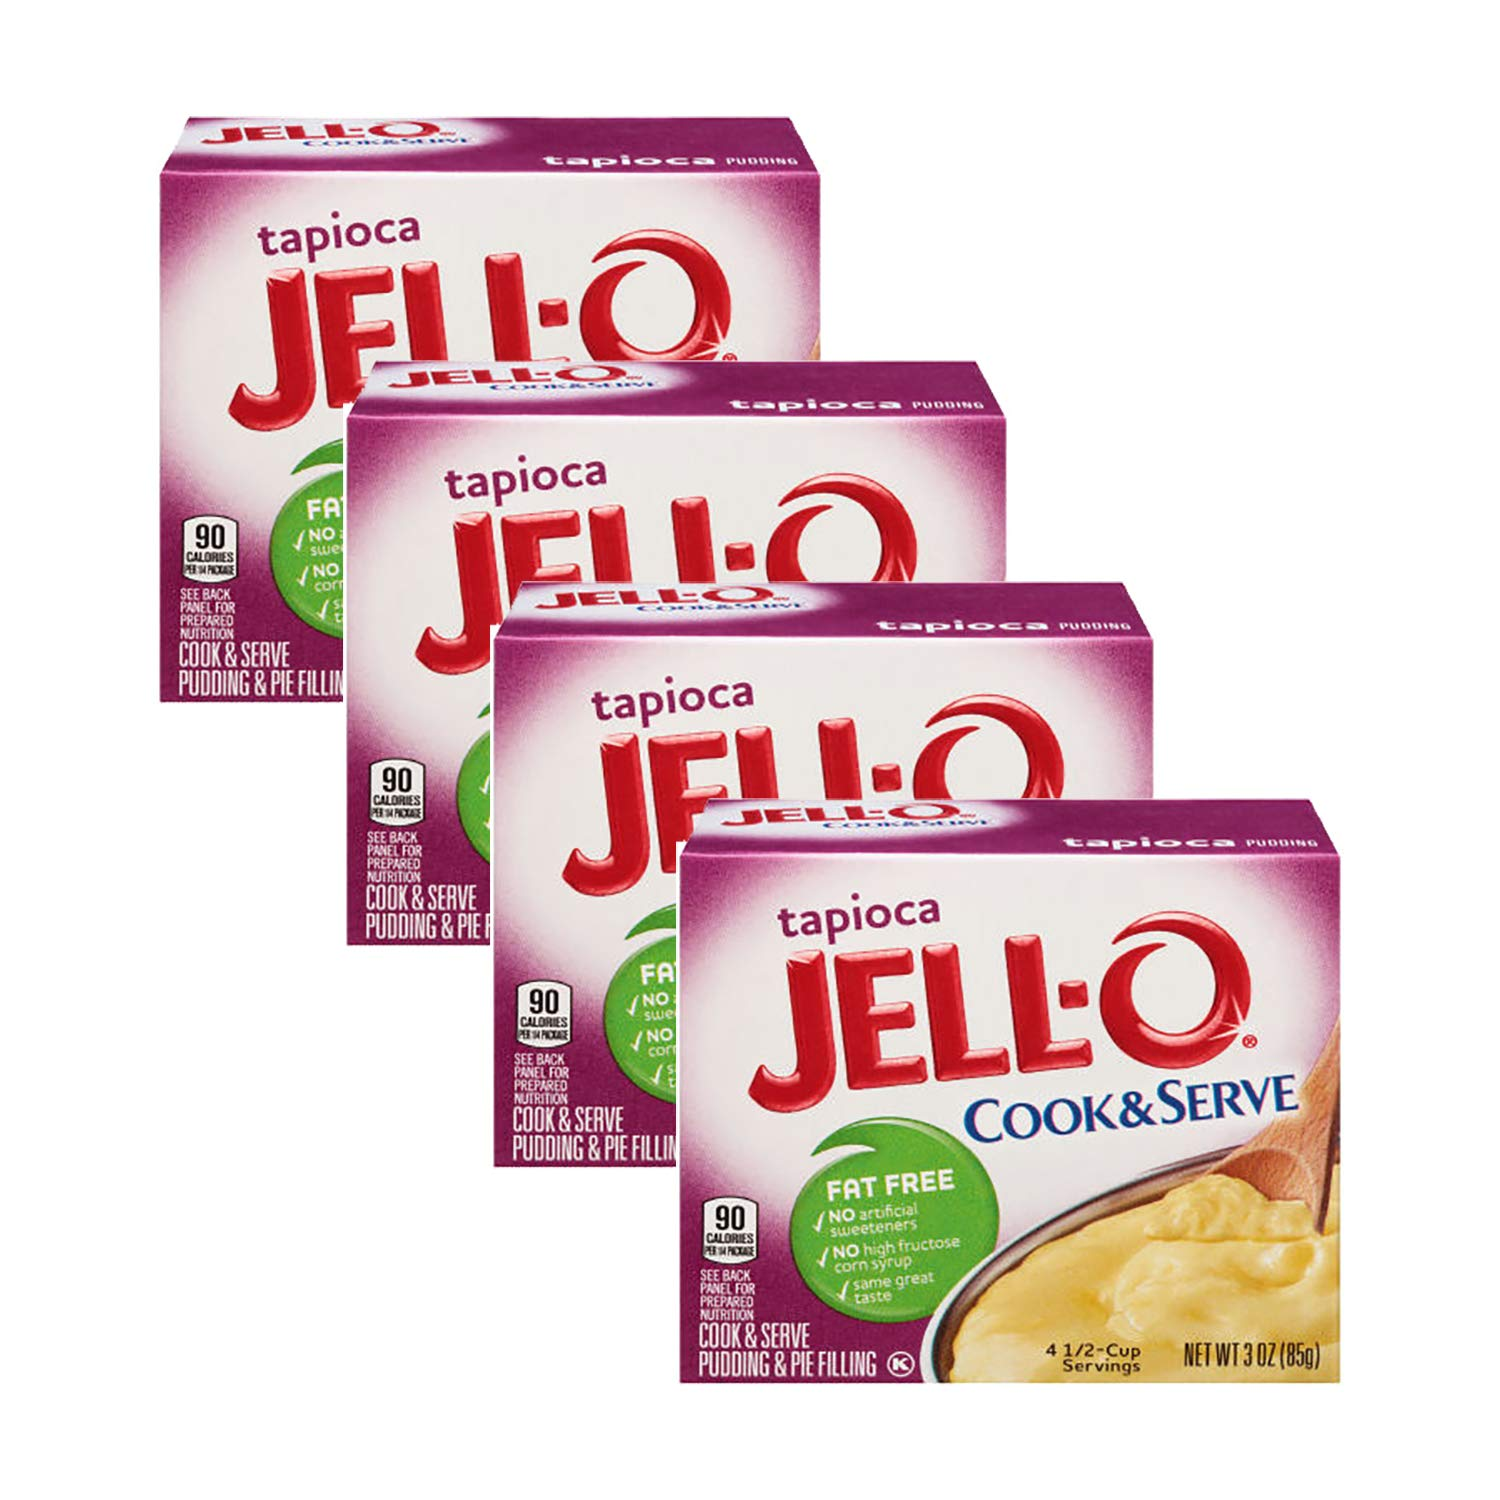 Jell-O, Cook & Serve, Tapioca Pudding & Pie Filling, 3oz Box (Pack of 4)